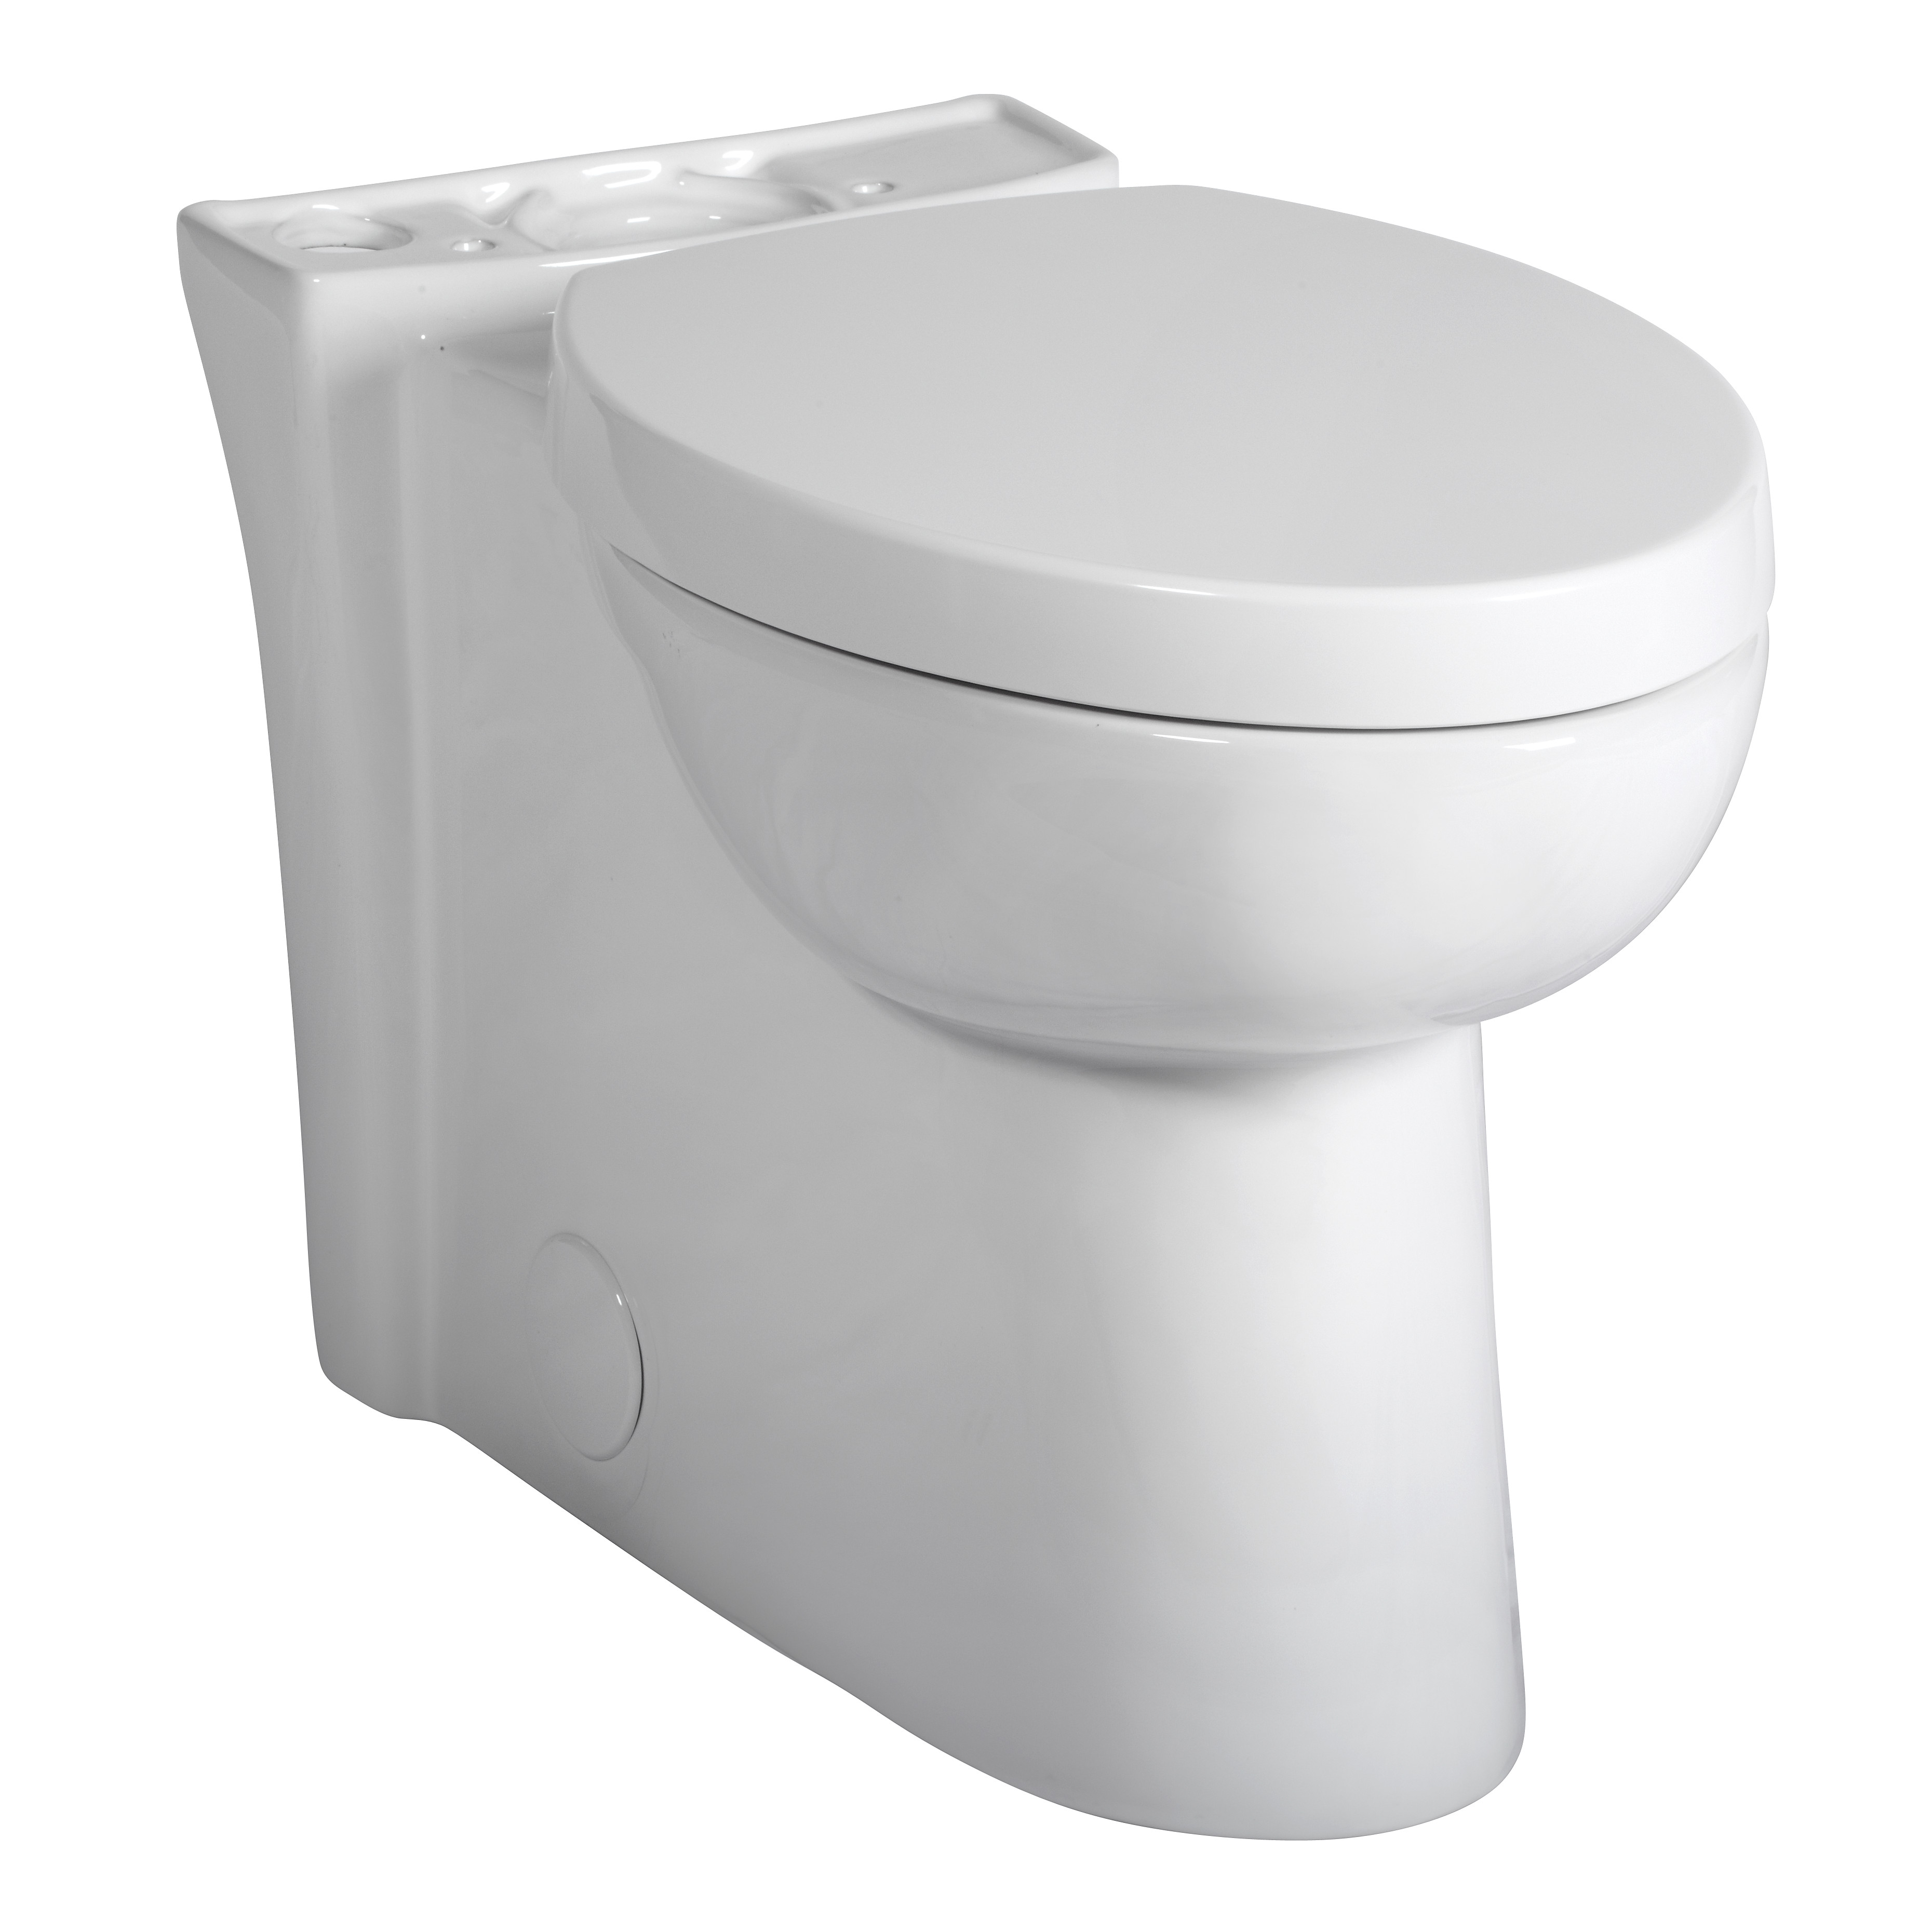 American Standard 3075.120.020 Toilet Bowl, White, Elongated, 12 in Rough-In, 16-1/2 in H Rim, 2-1/8 in Trapway, Studio™ Activate™ Right Height™